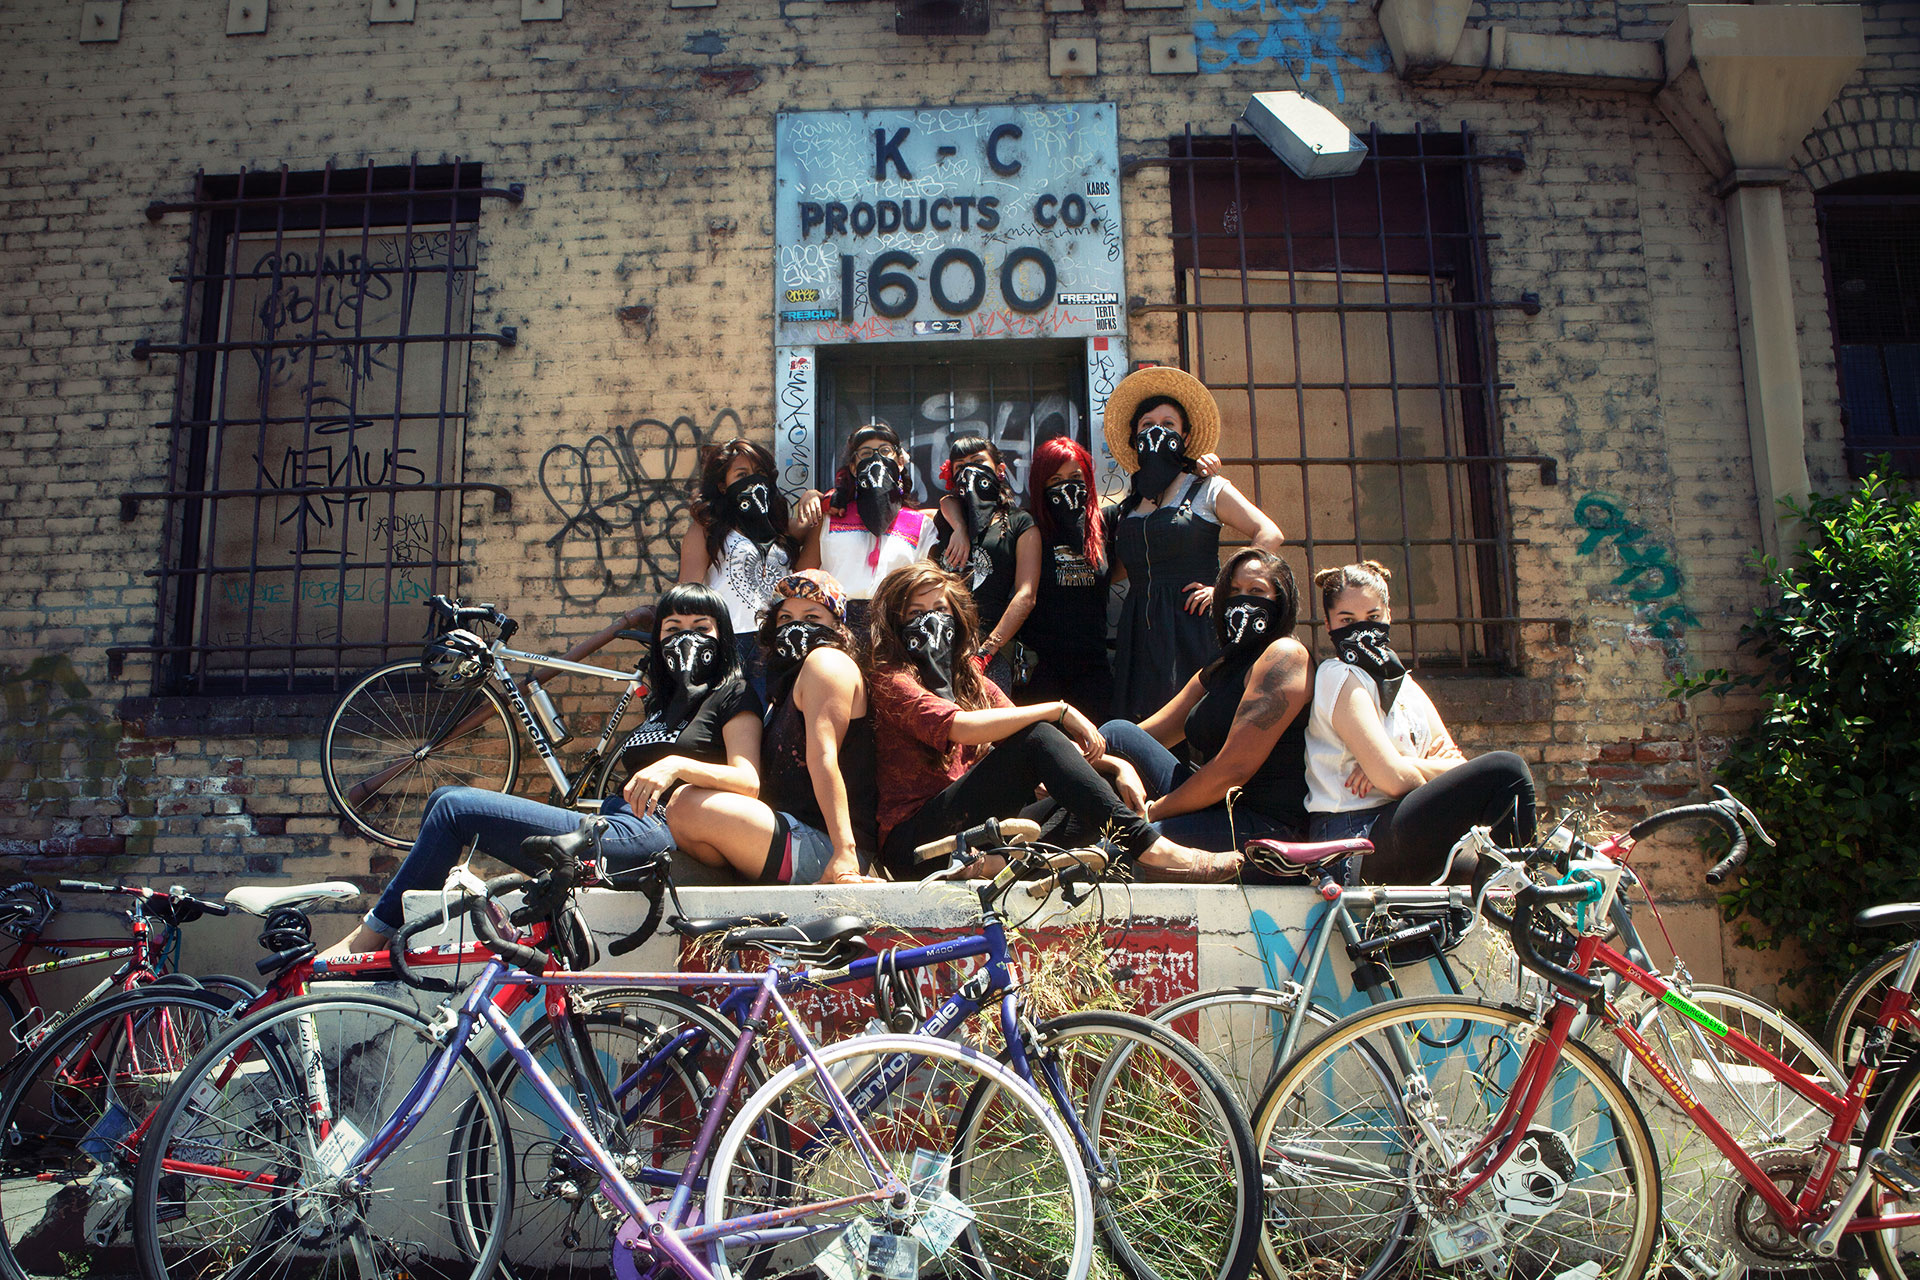 The Ovas bike brigade pose with bikes in front of a warehouse in East Los Angeles